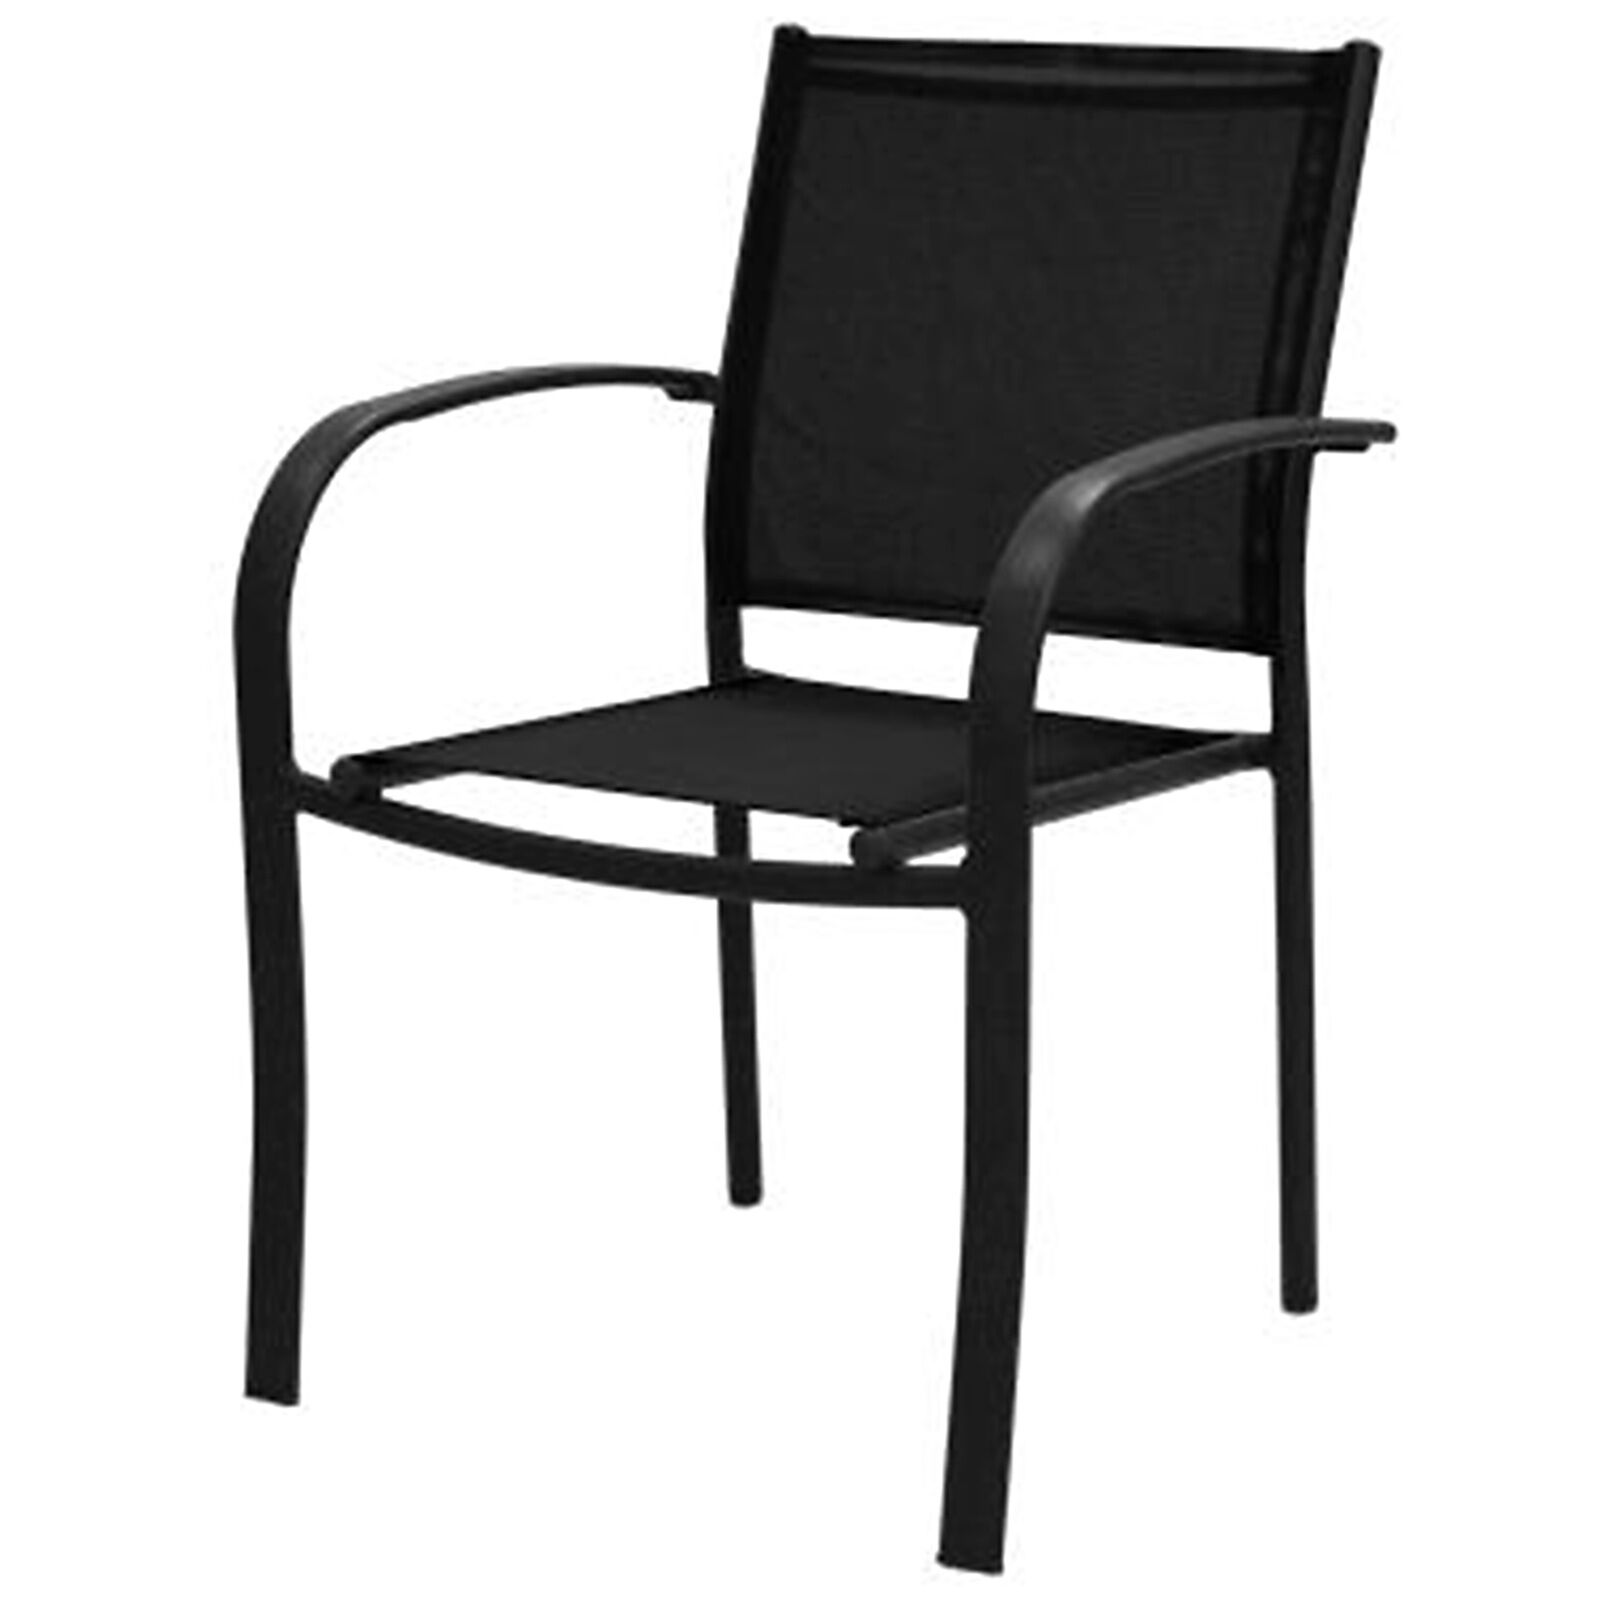 low back lawn chair 9 samsonite folding parts sling stack black at home